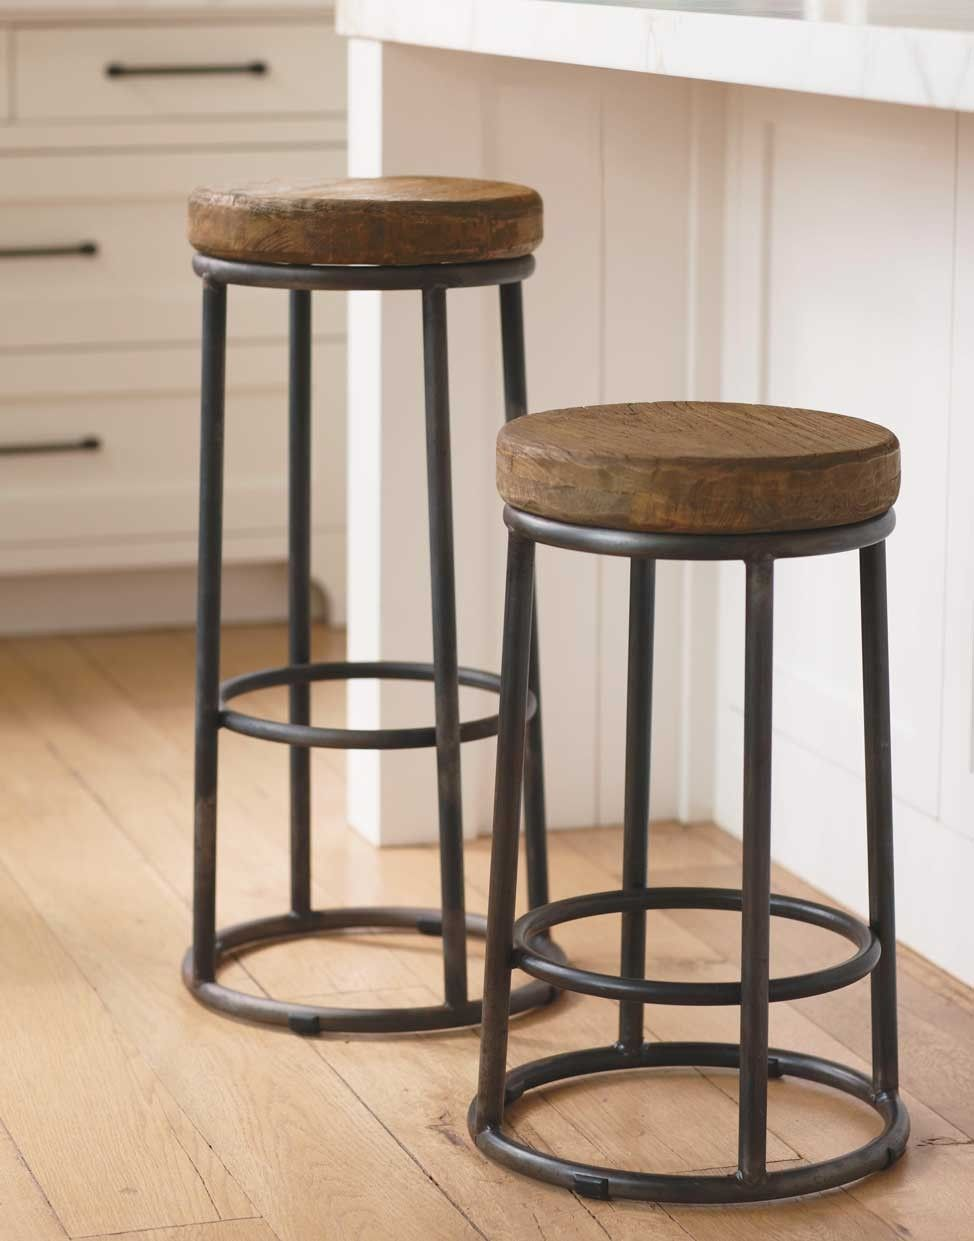 Get the Look Molly Simss Rustic but Modern Hamptons Kitchen Rustic Bar StoolsVintage